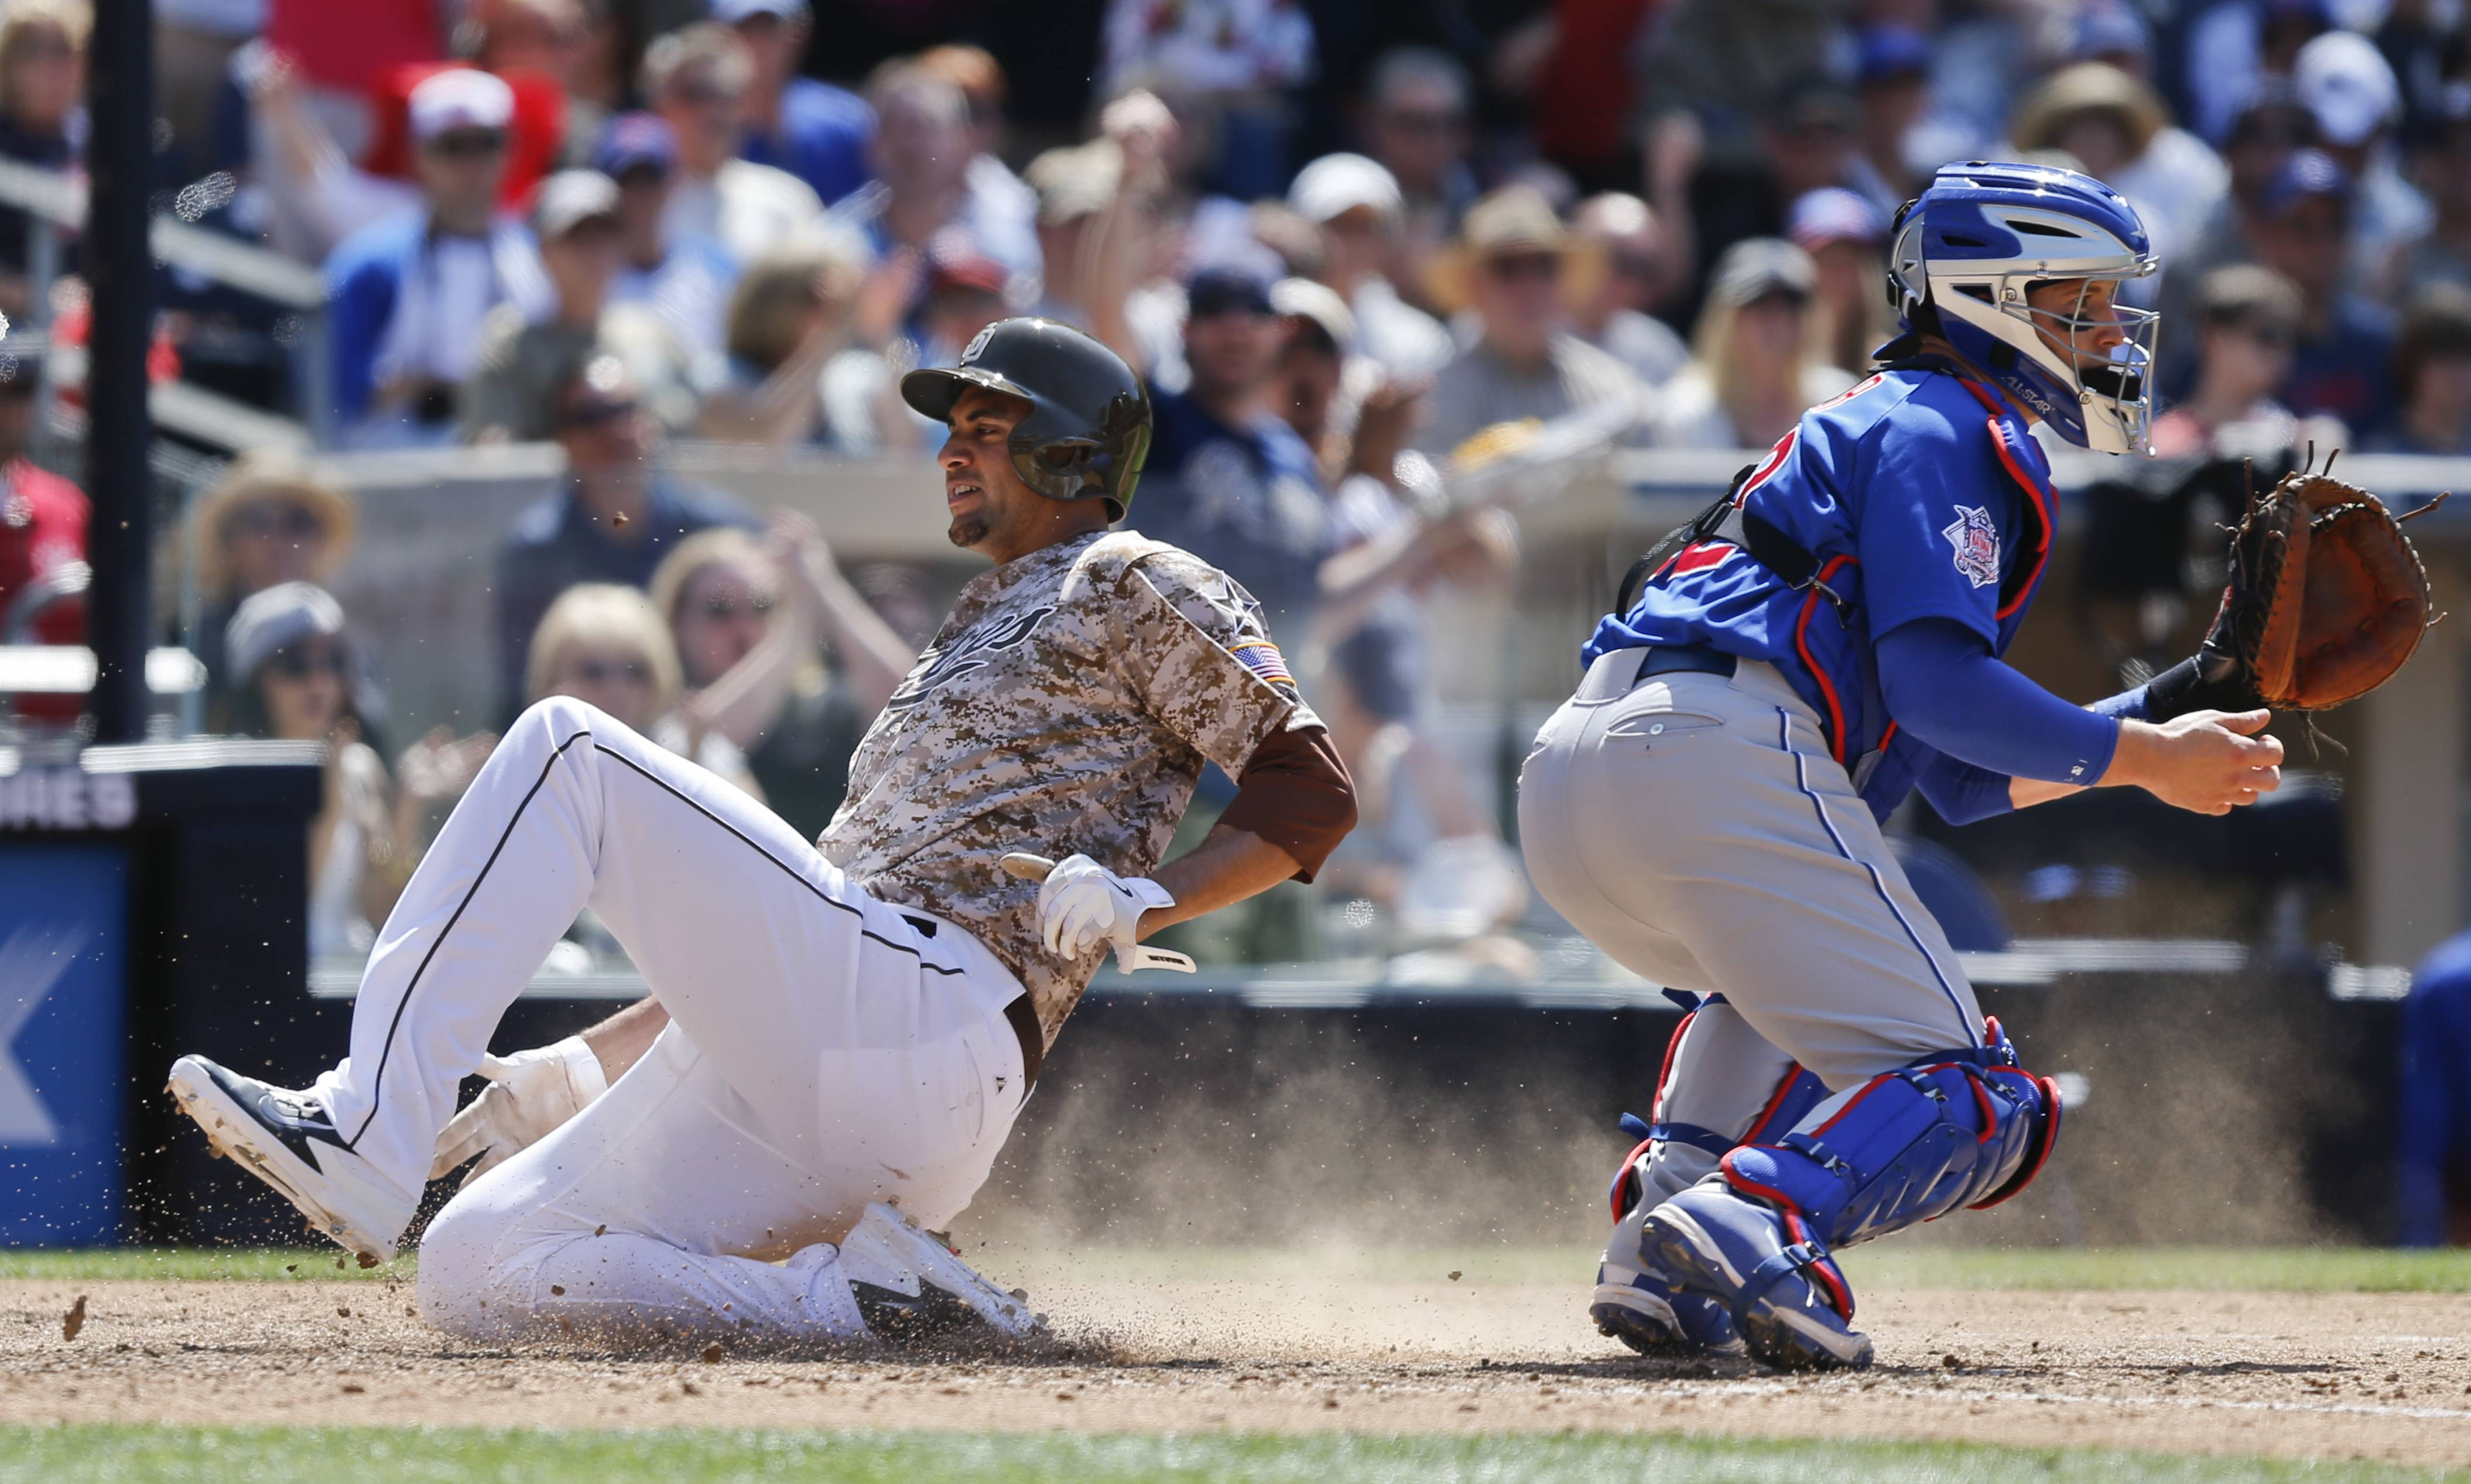 San Diego Padres pinch runner Tyson Ross sides past Chicago Cubs catcher John Baker, right, while scoring against the Chicago Cubs during the sixth inning of a baseball game, Sunday, May 25, 2014, in San Diego.